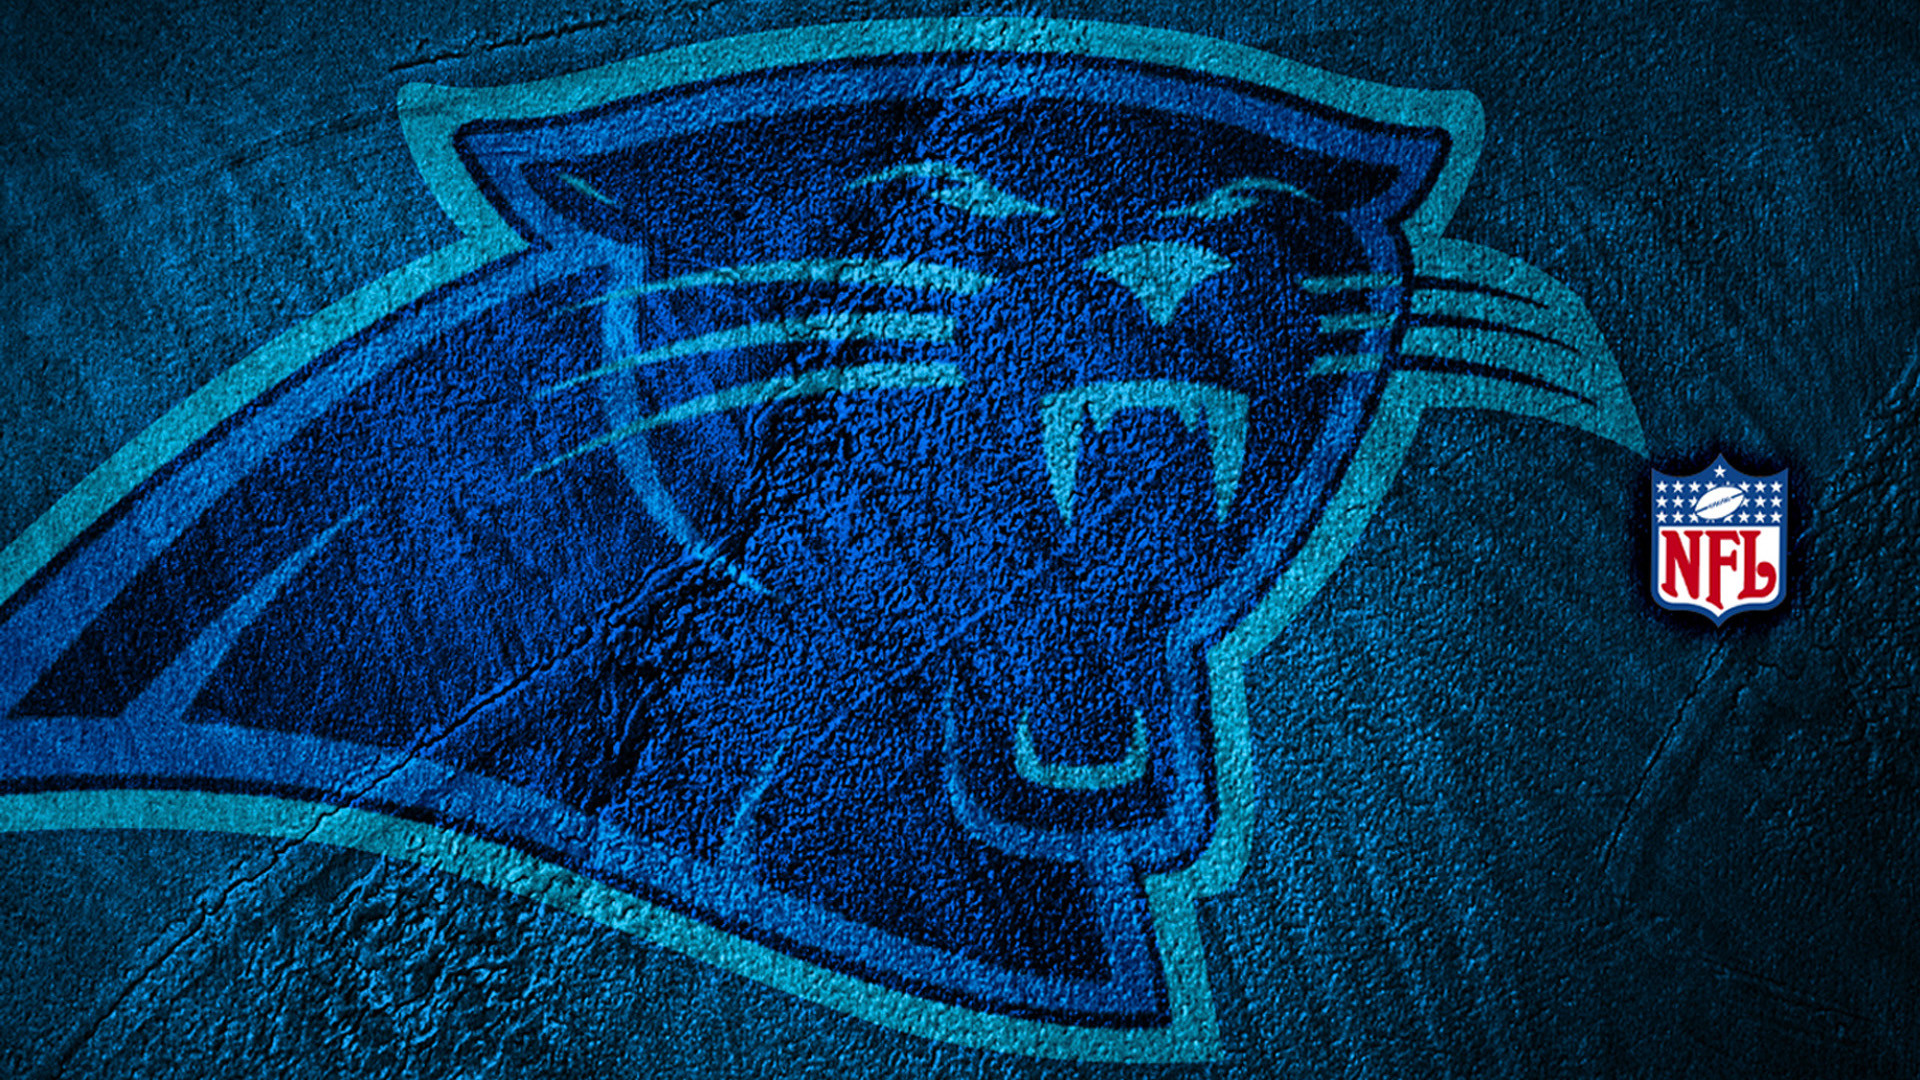 Carolina Panthers Wallpapers